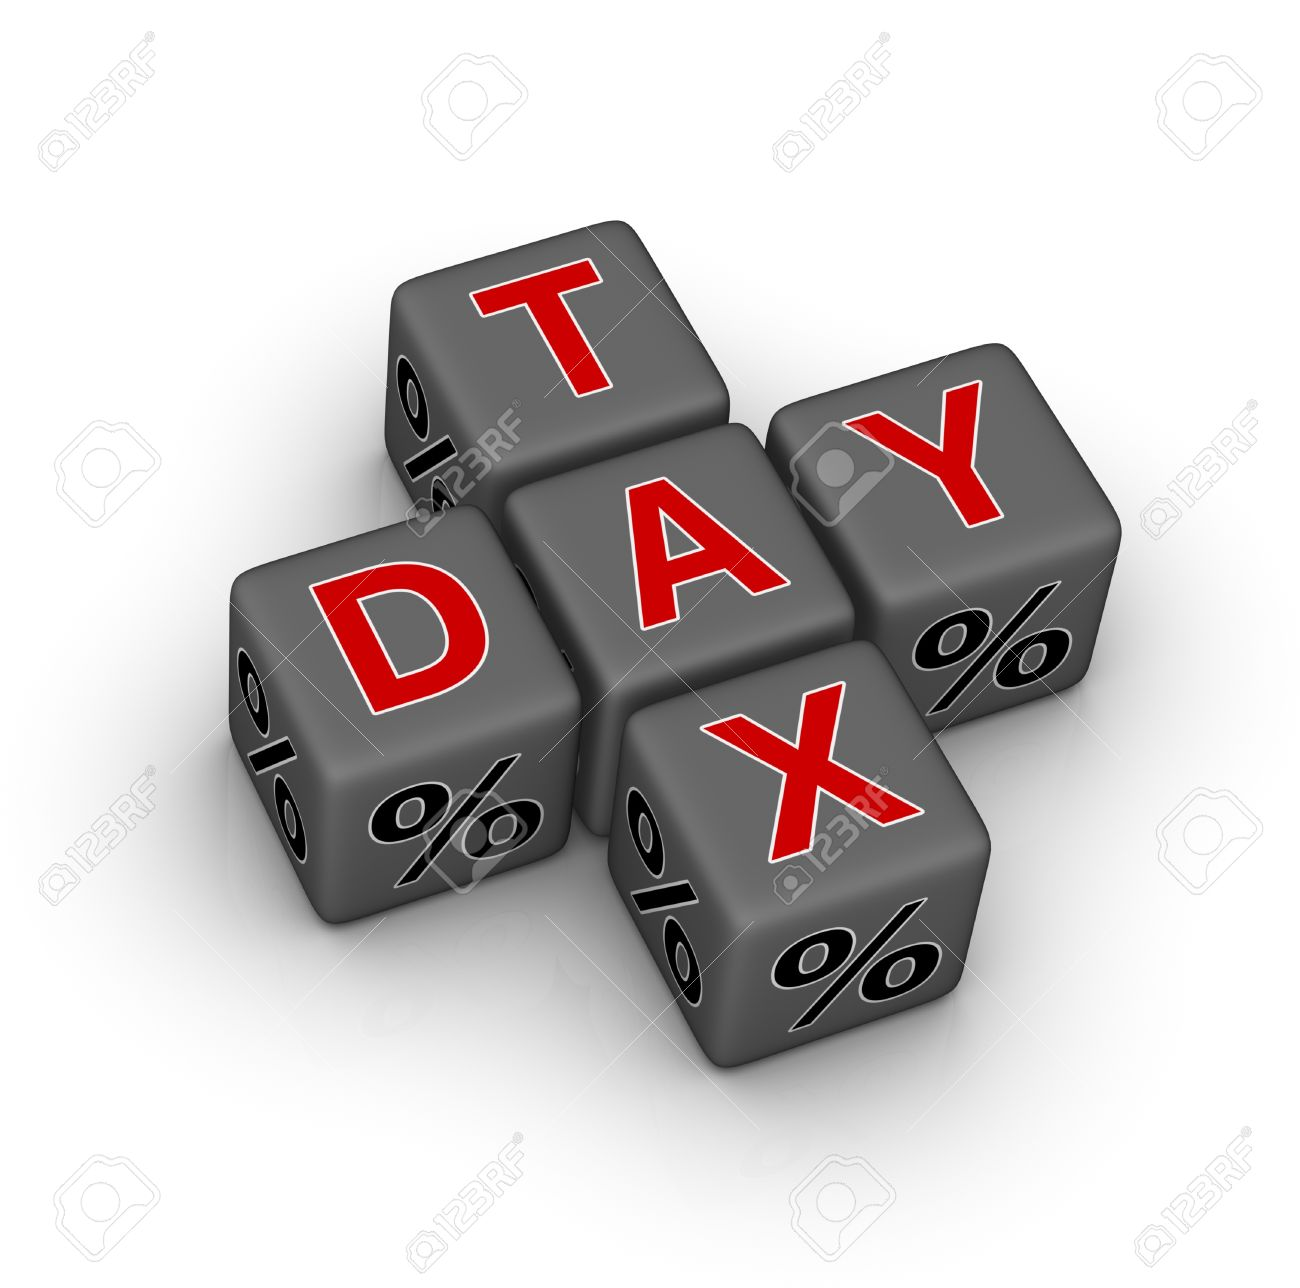 Tax Day Images 436